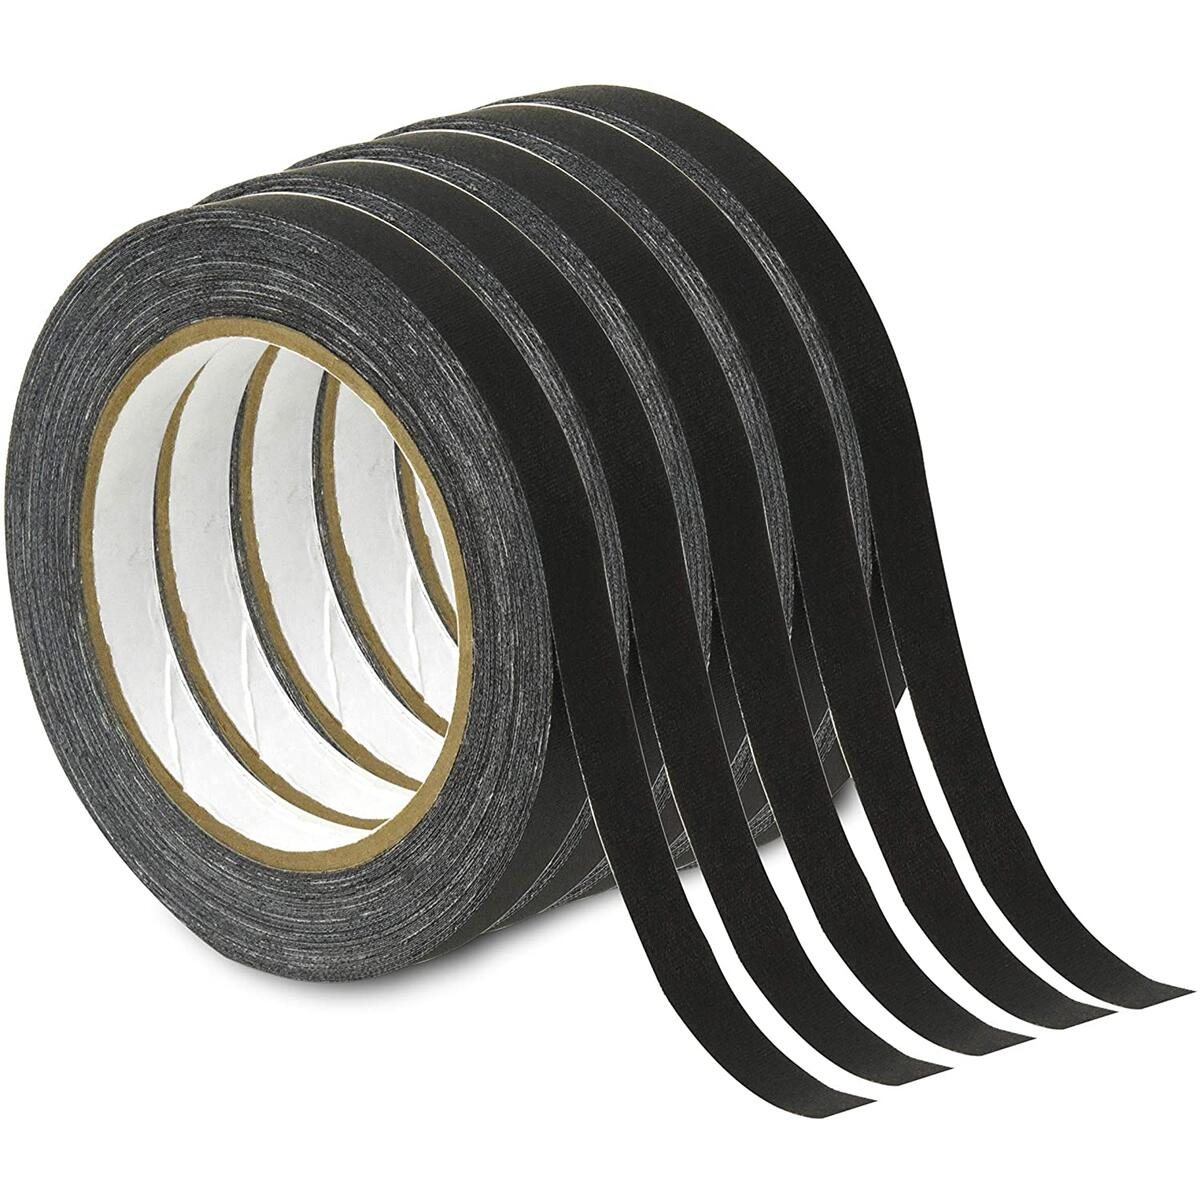 New - Gaffer Power Spike Tape - Premium Cloth Tape | Dry Erase Tape for Whiteboard | Art Tape| Pinstripe Tape for Floors, Stages, Sets, Metal | 5 Pack (1/2 X 20 Yards) - Black